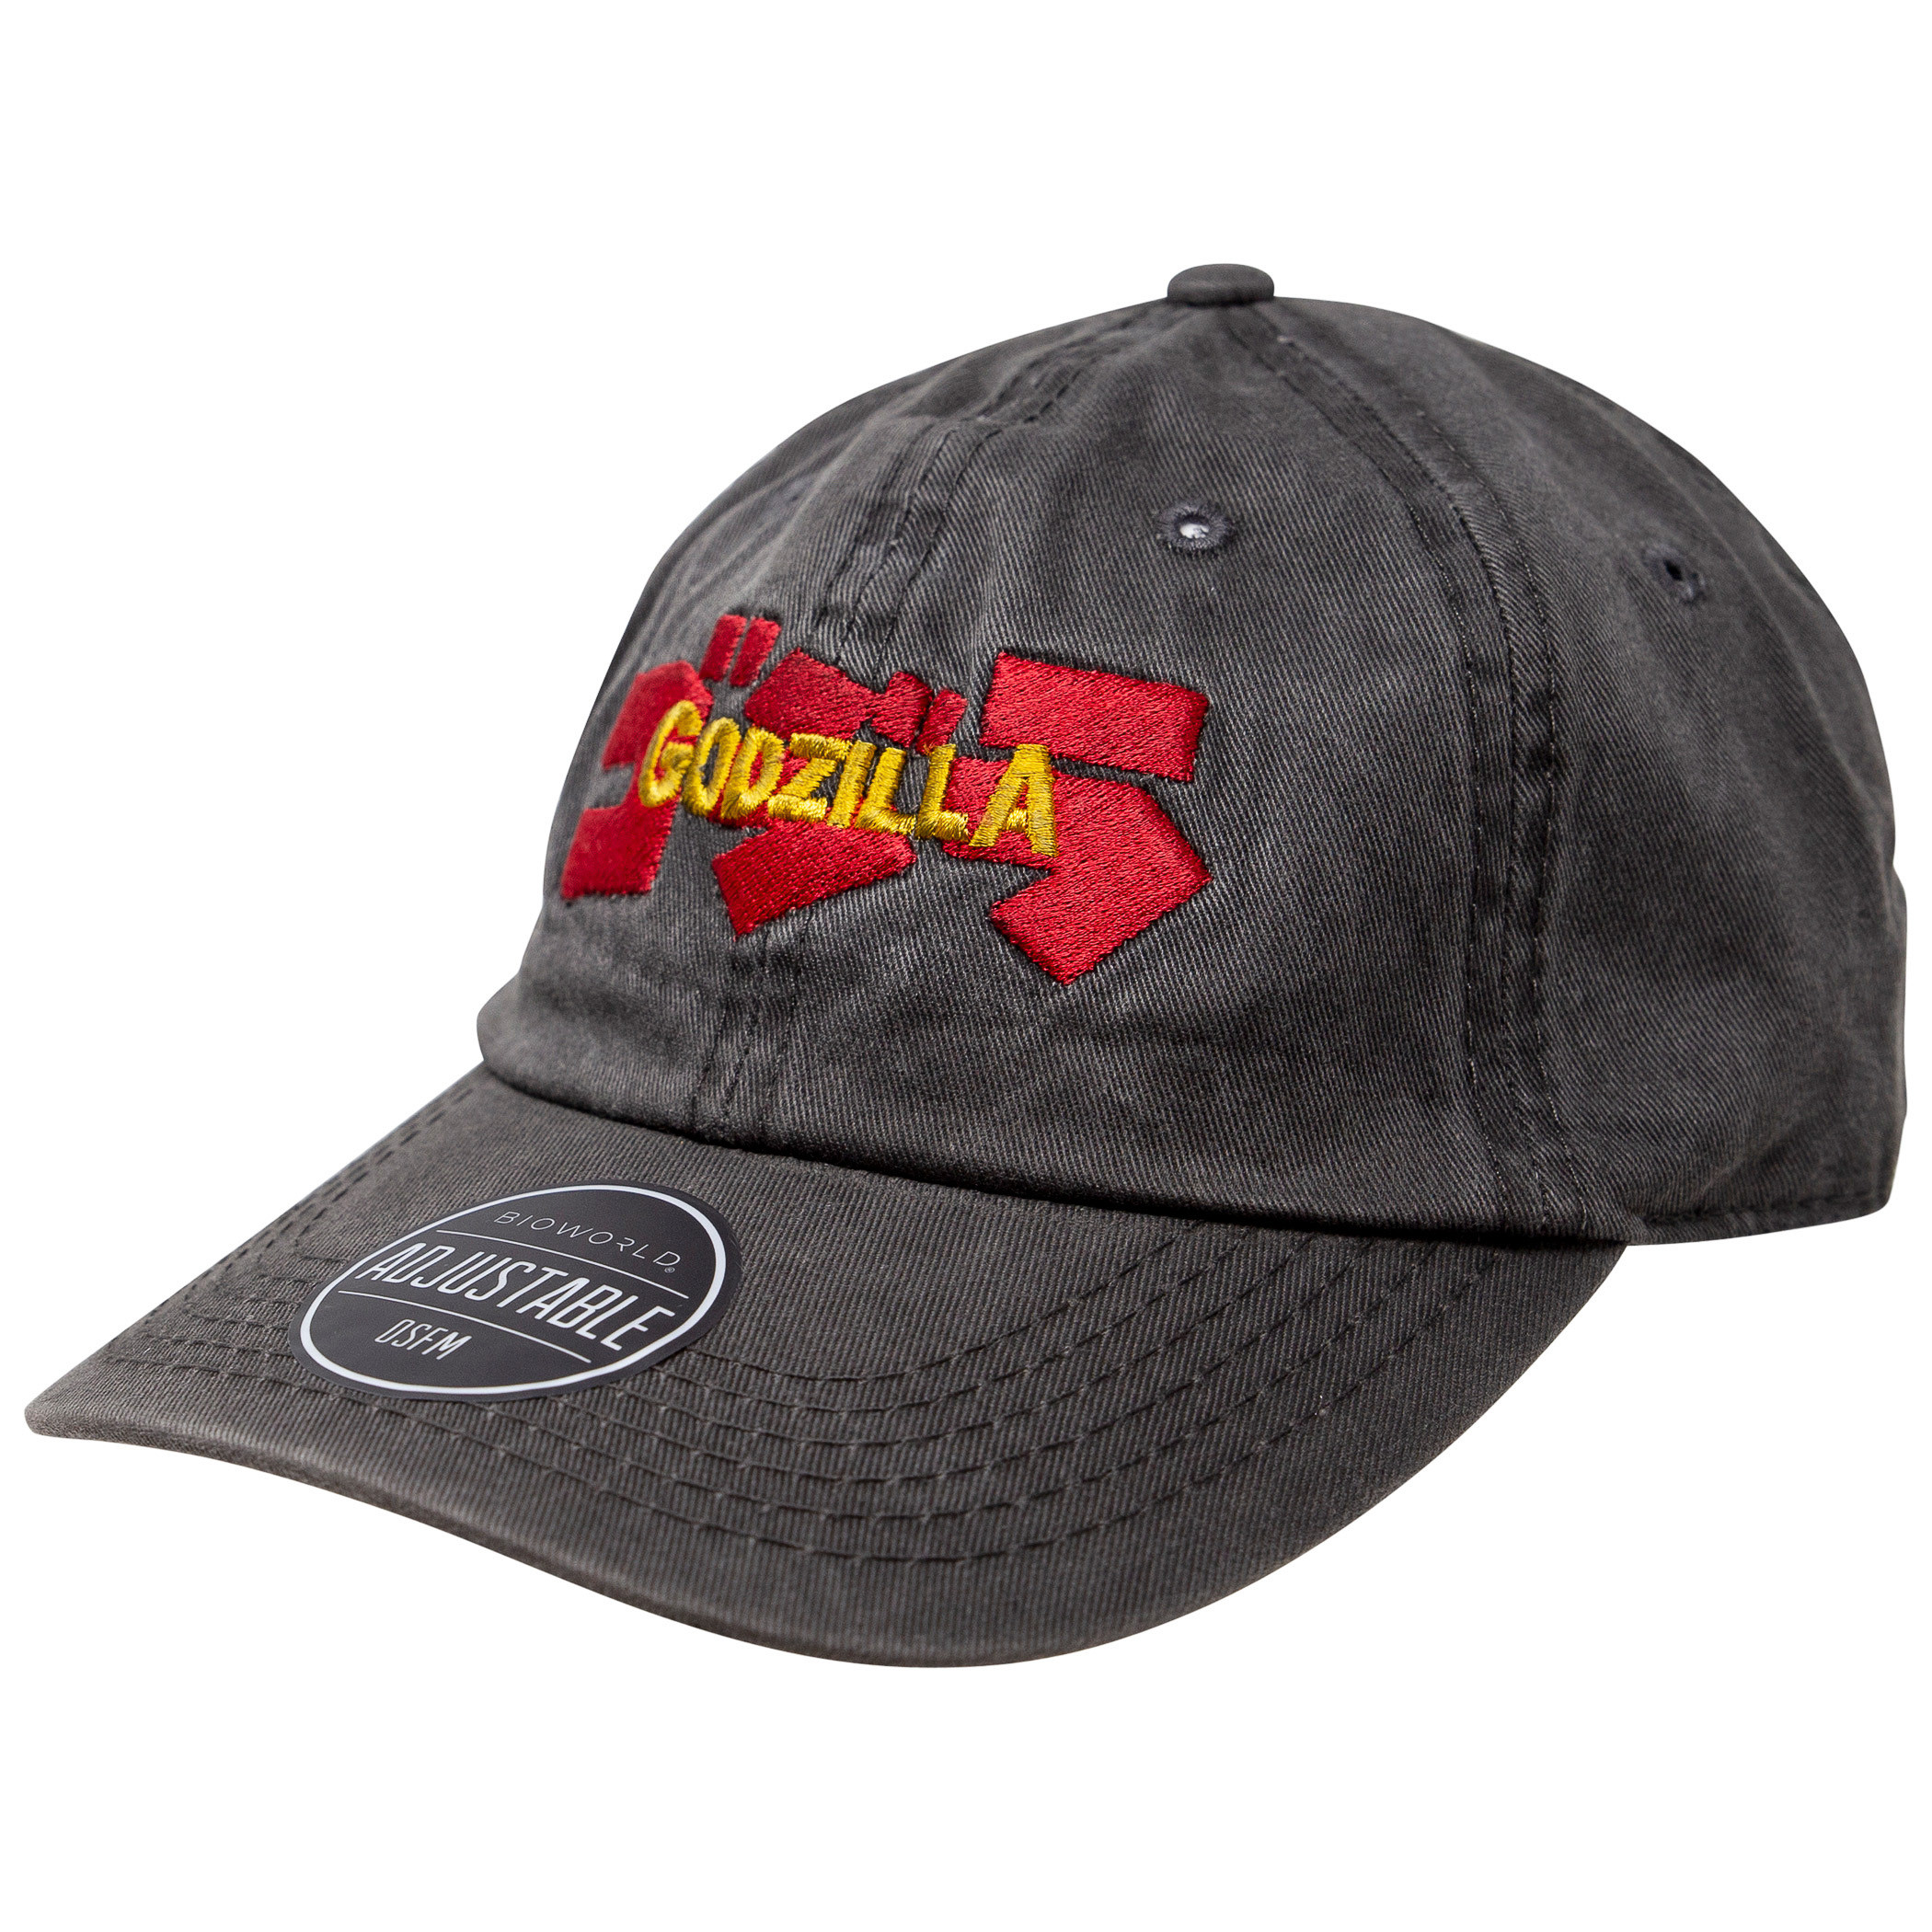 Godzilla Adjustable Strapback Dad Hat